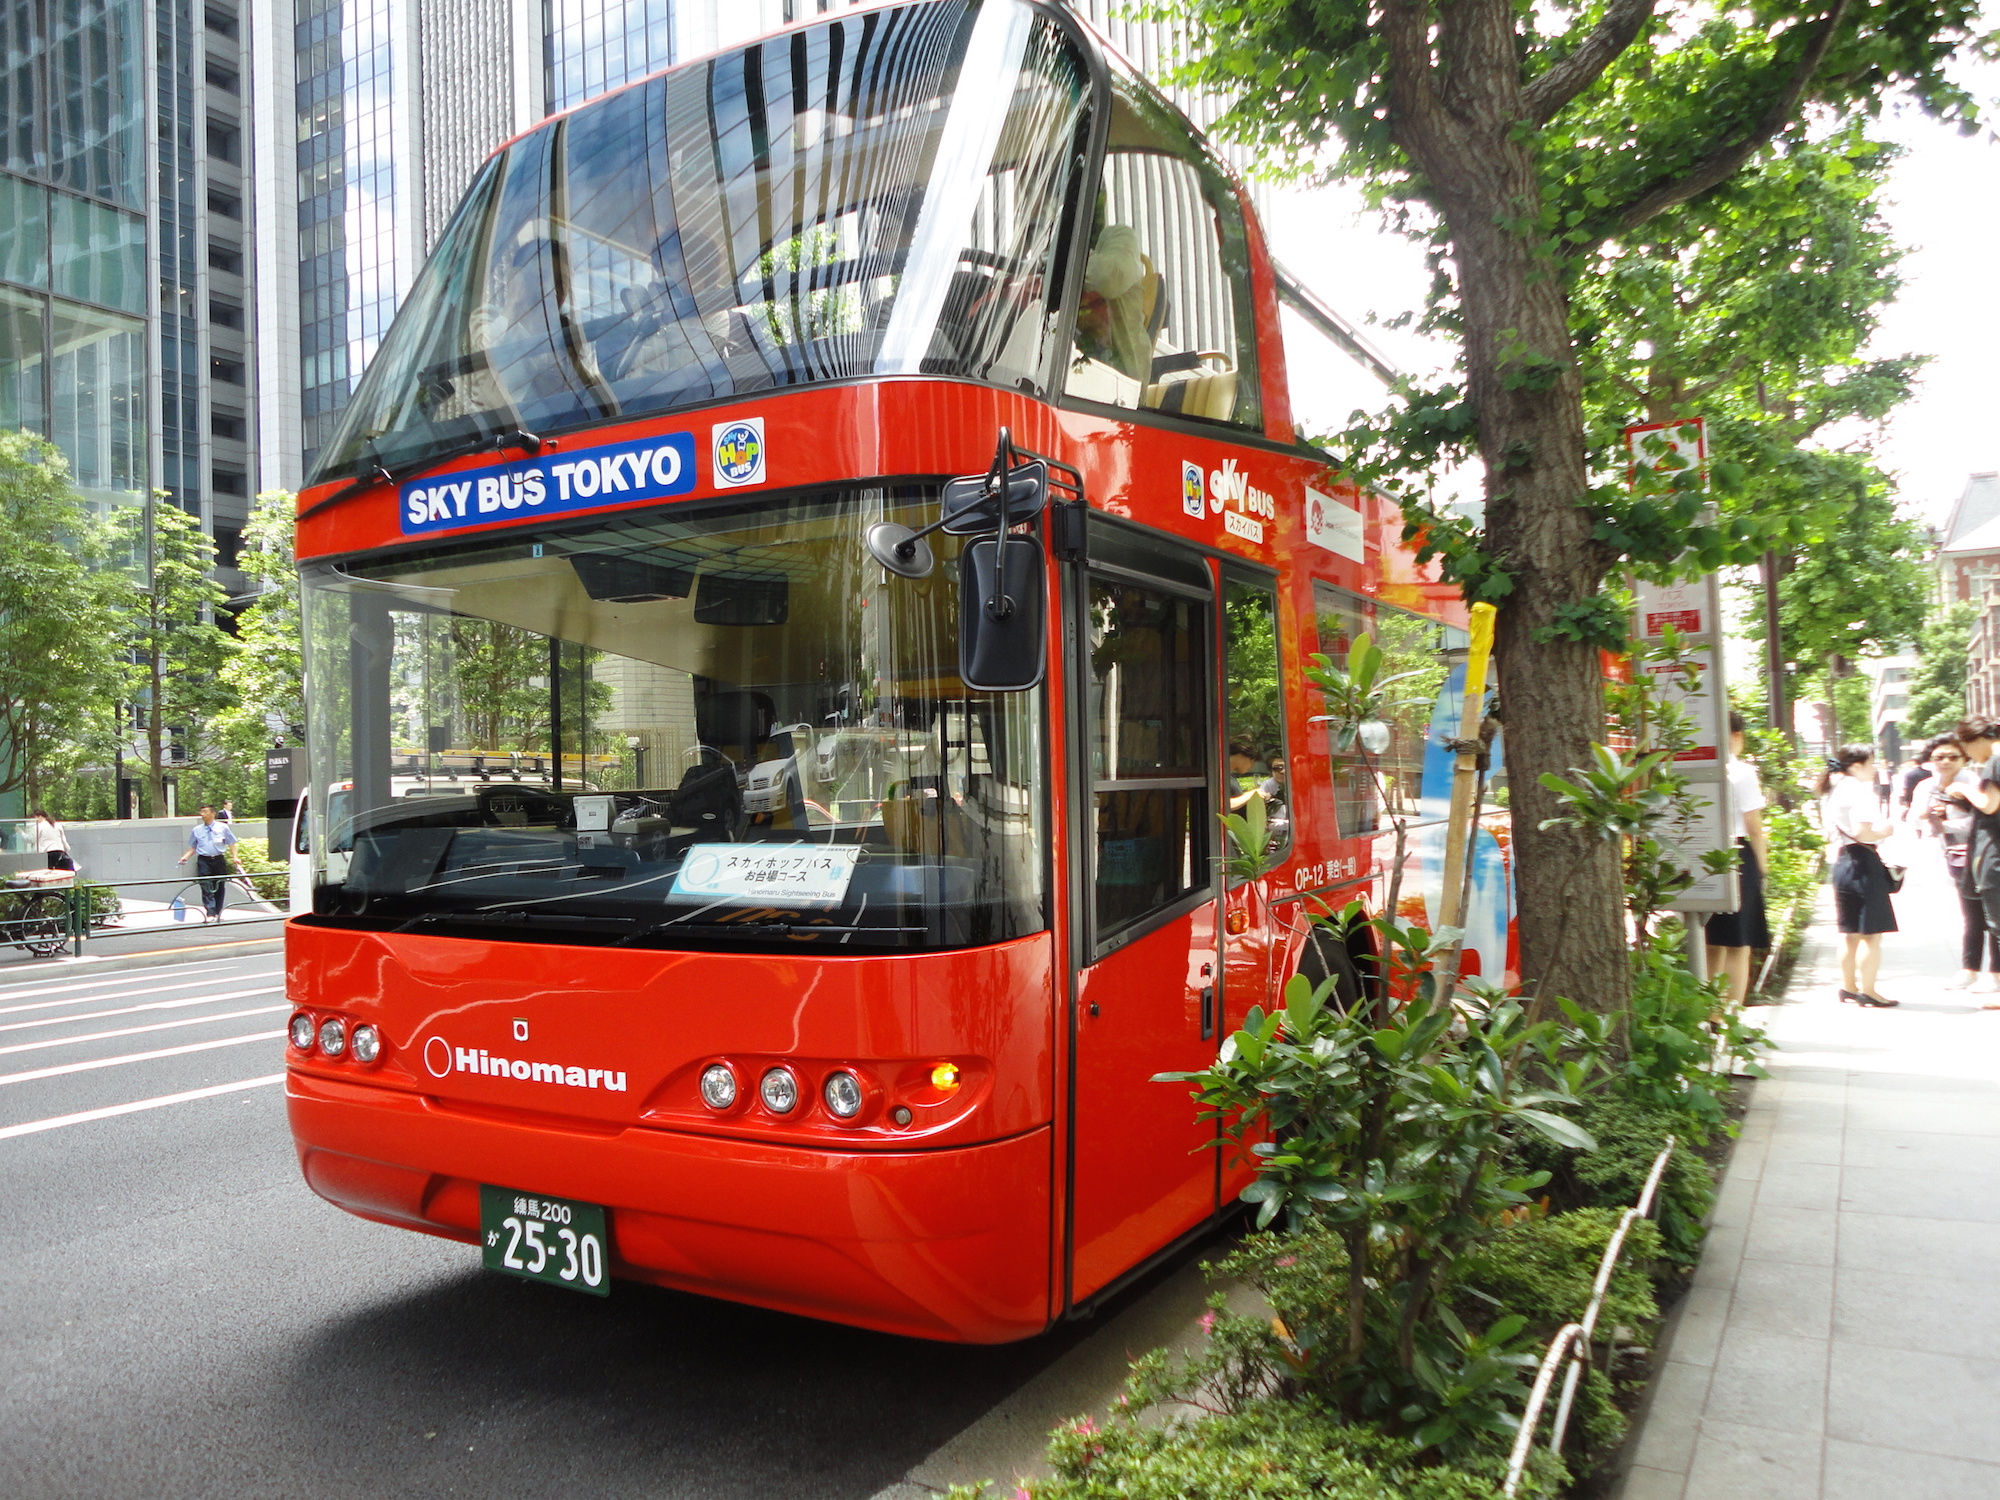 Hop-on hop-off Tokyo sightseeing bus